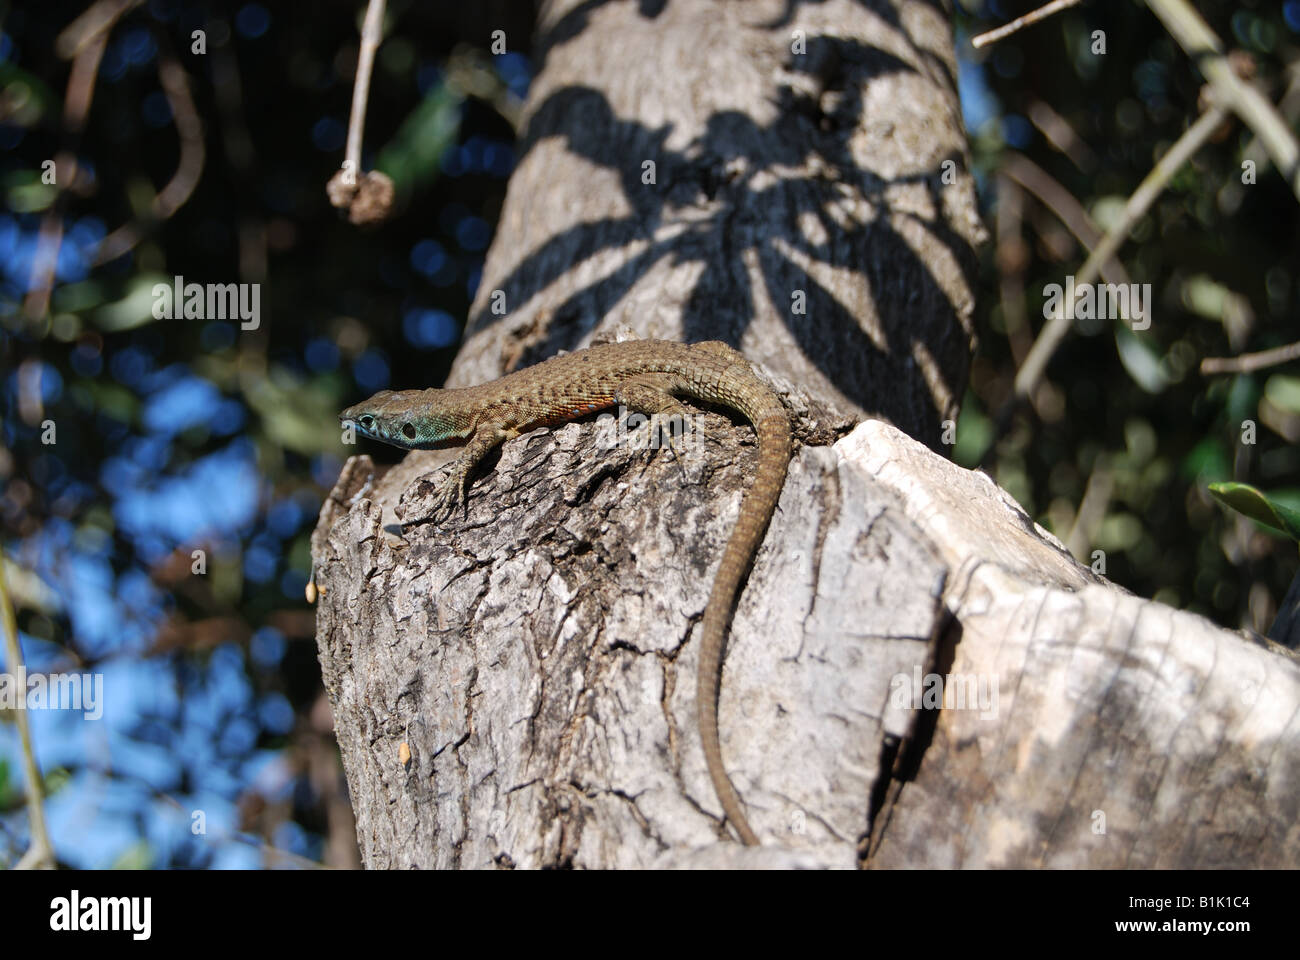 small lizard gecko sitting on a tree branch stock photo royalty